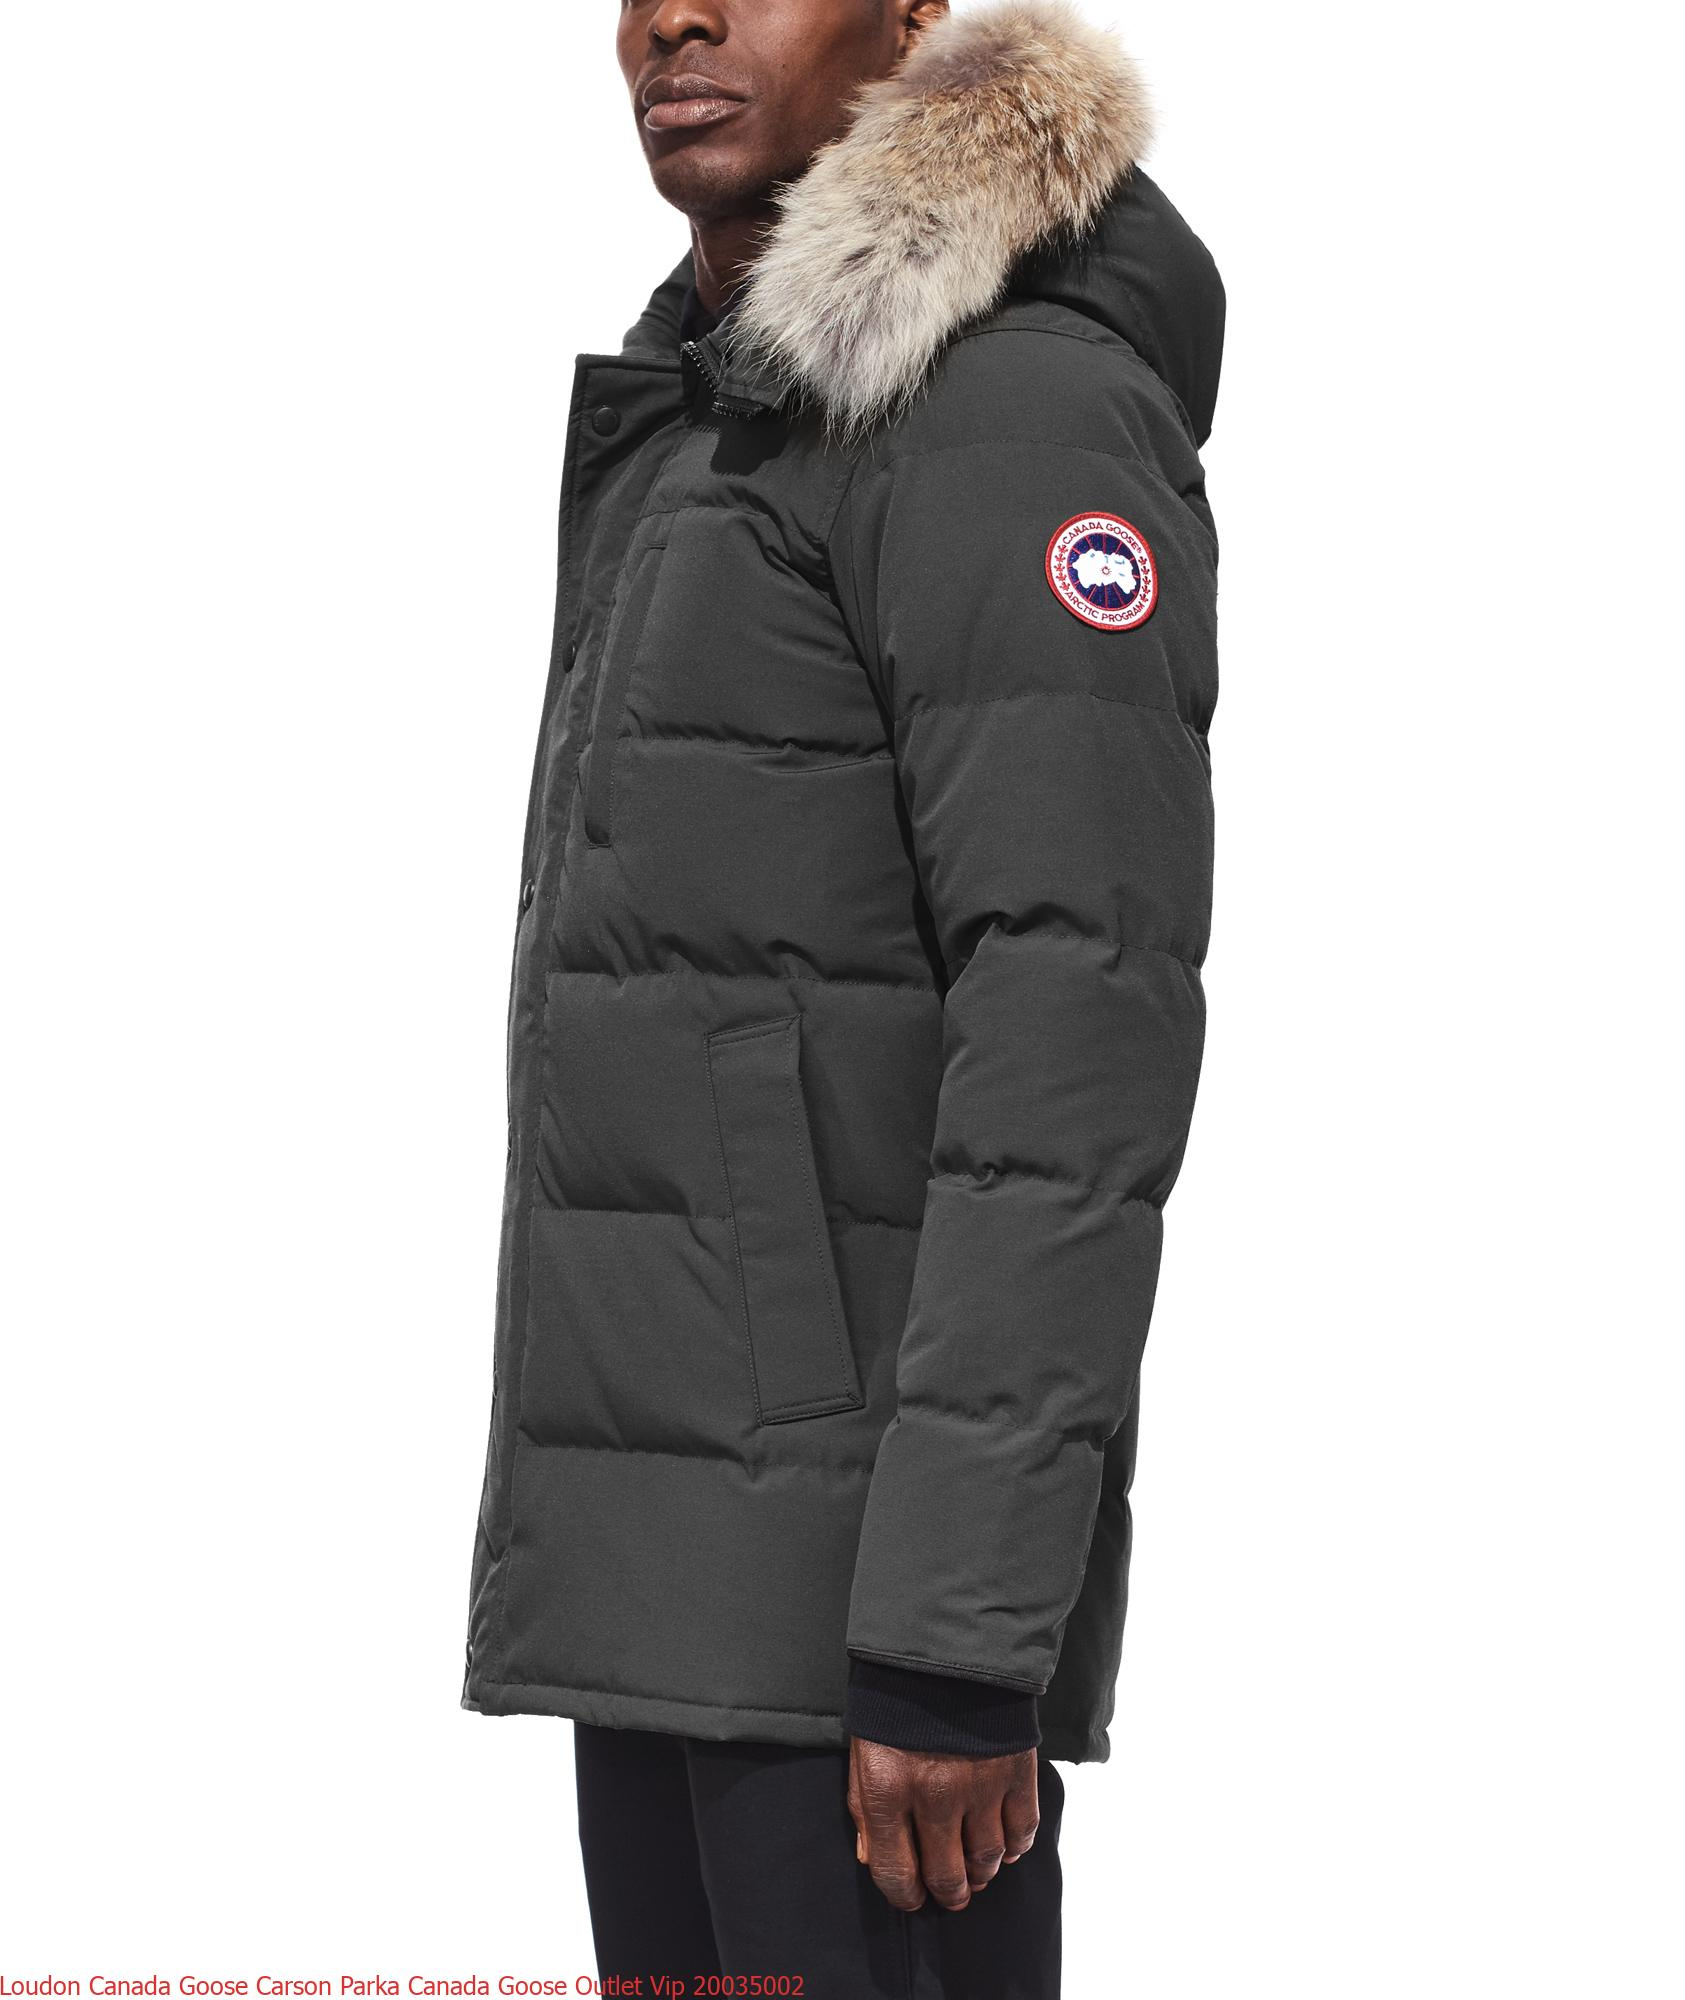 Loudon Canada Goose Carson Parka Canada Goose Outlet Vip 20035002 – Cheap canada  goose® outlet jacket clearance on sale 79ff3bb55ebe